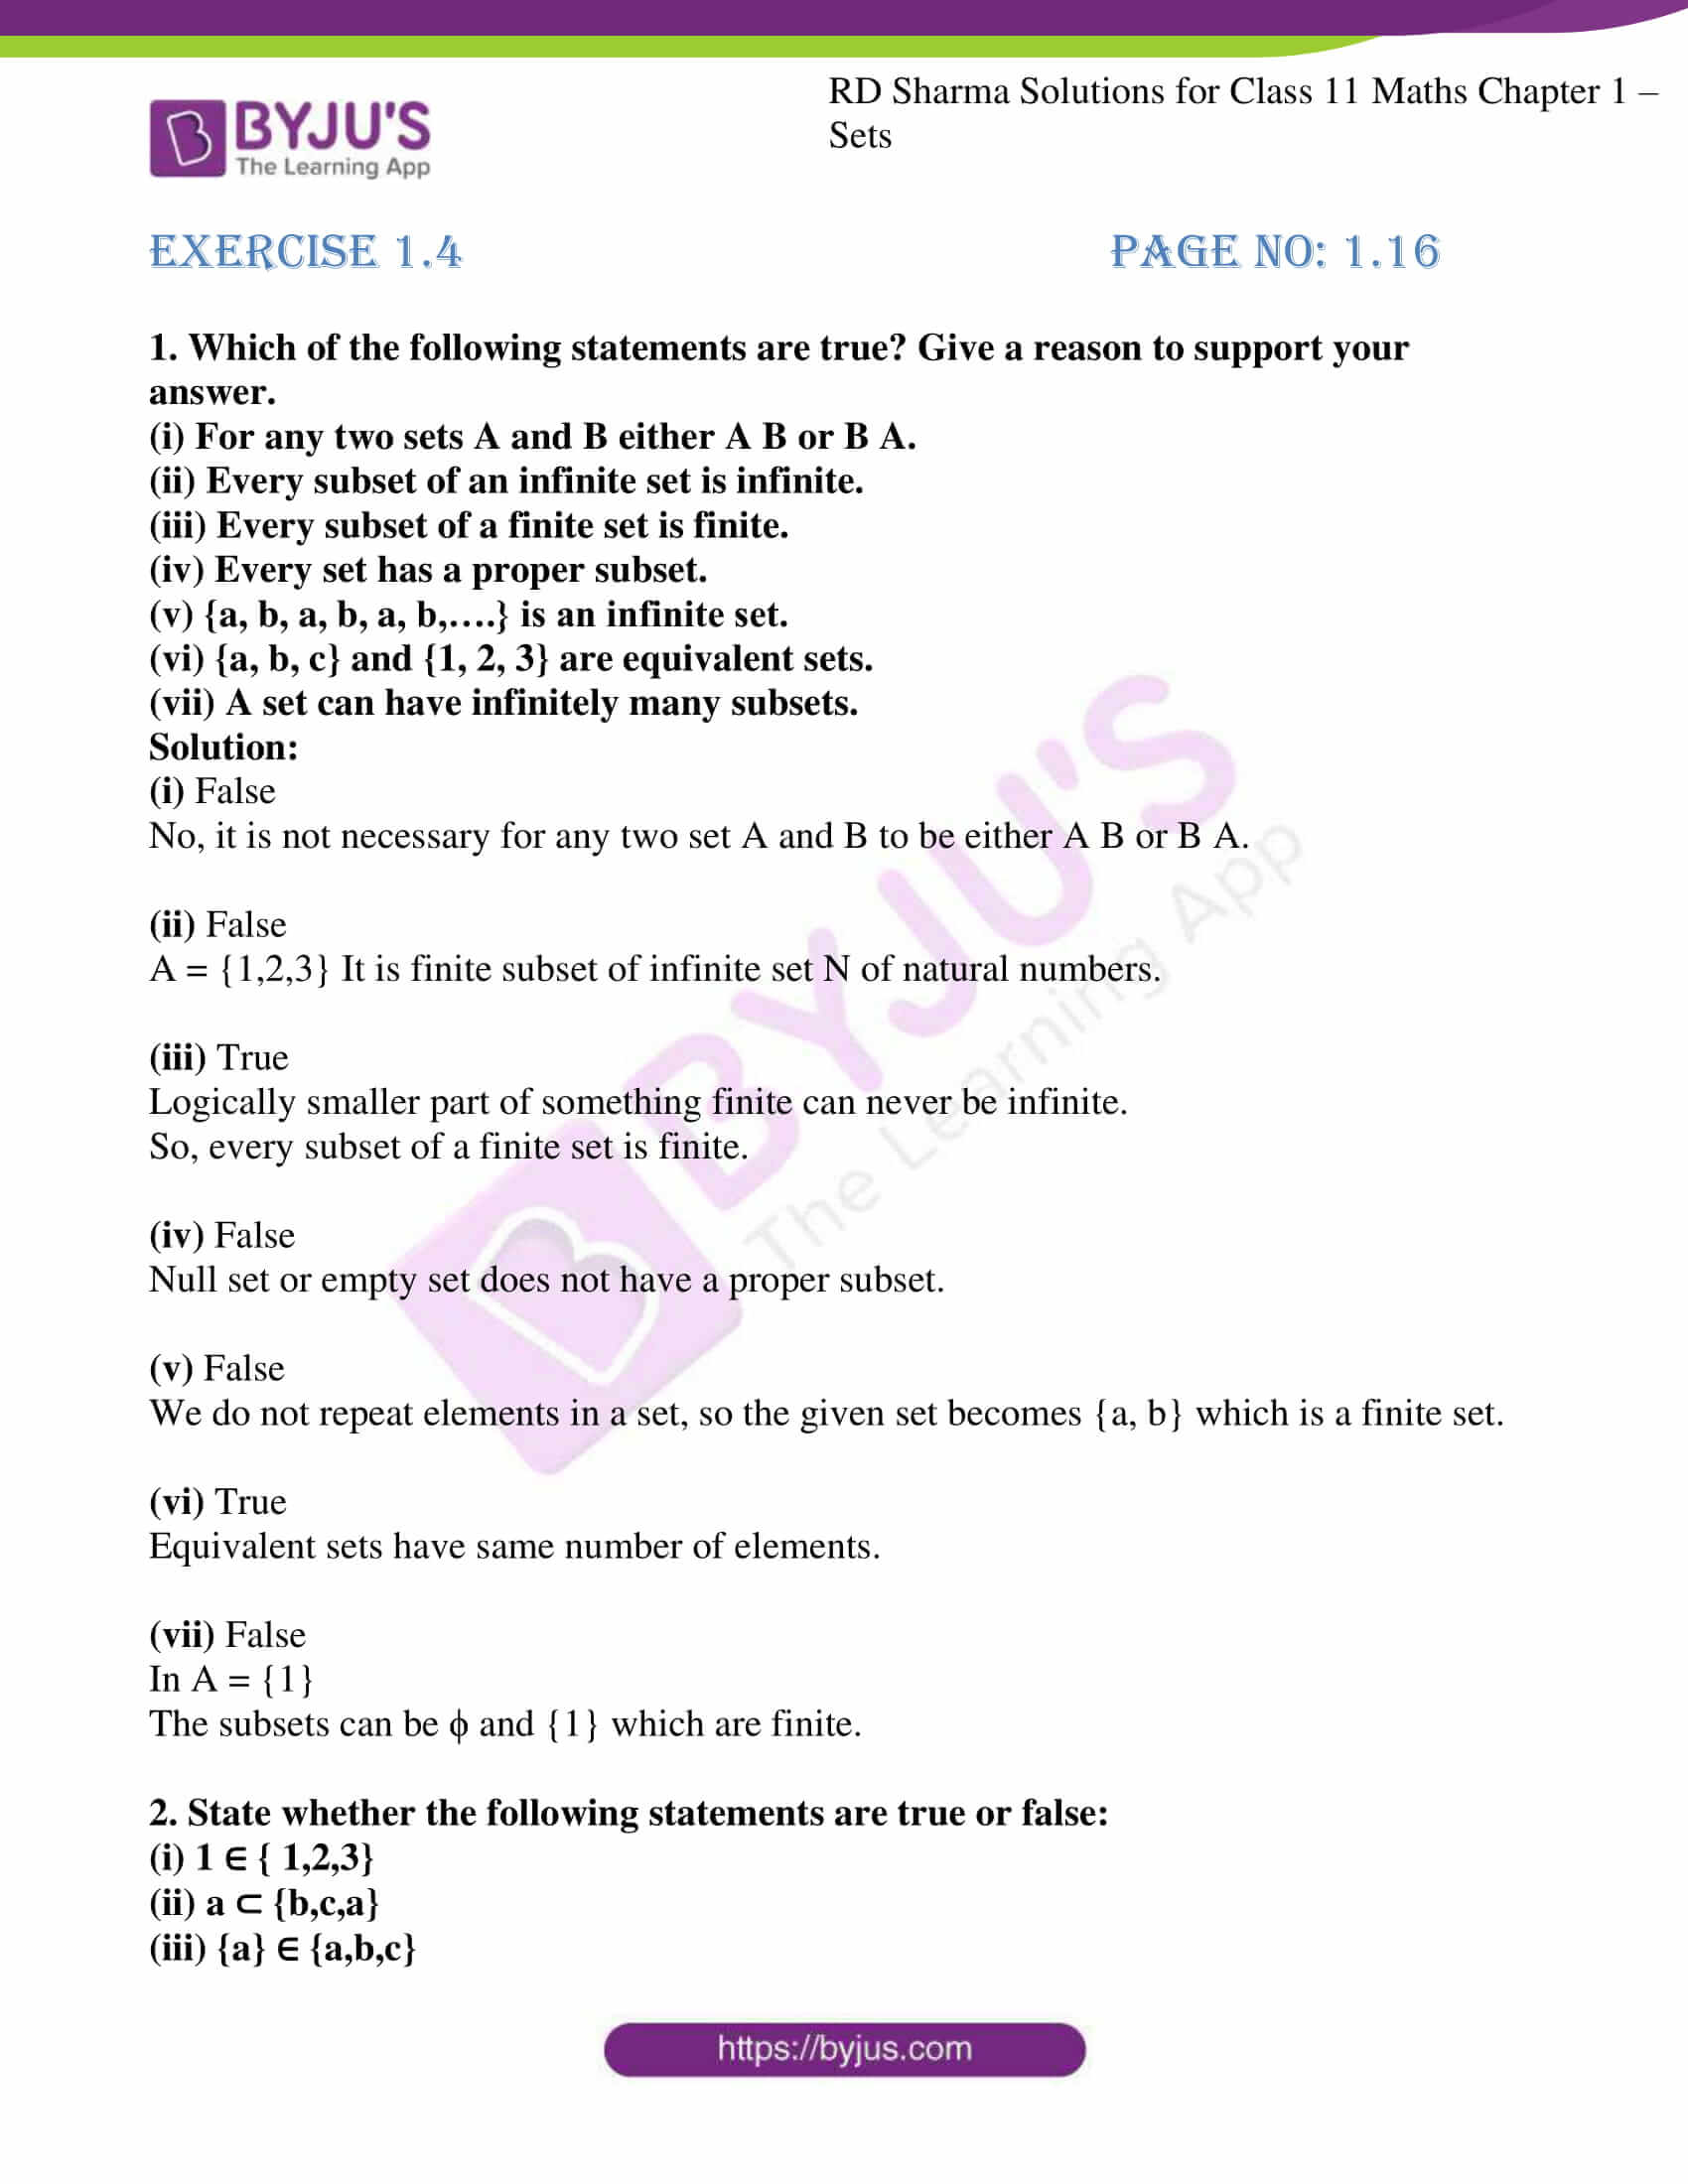 rd sharma class 11 maths ch 1 sets ex 4 1